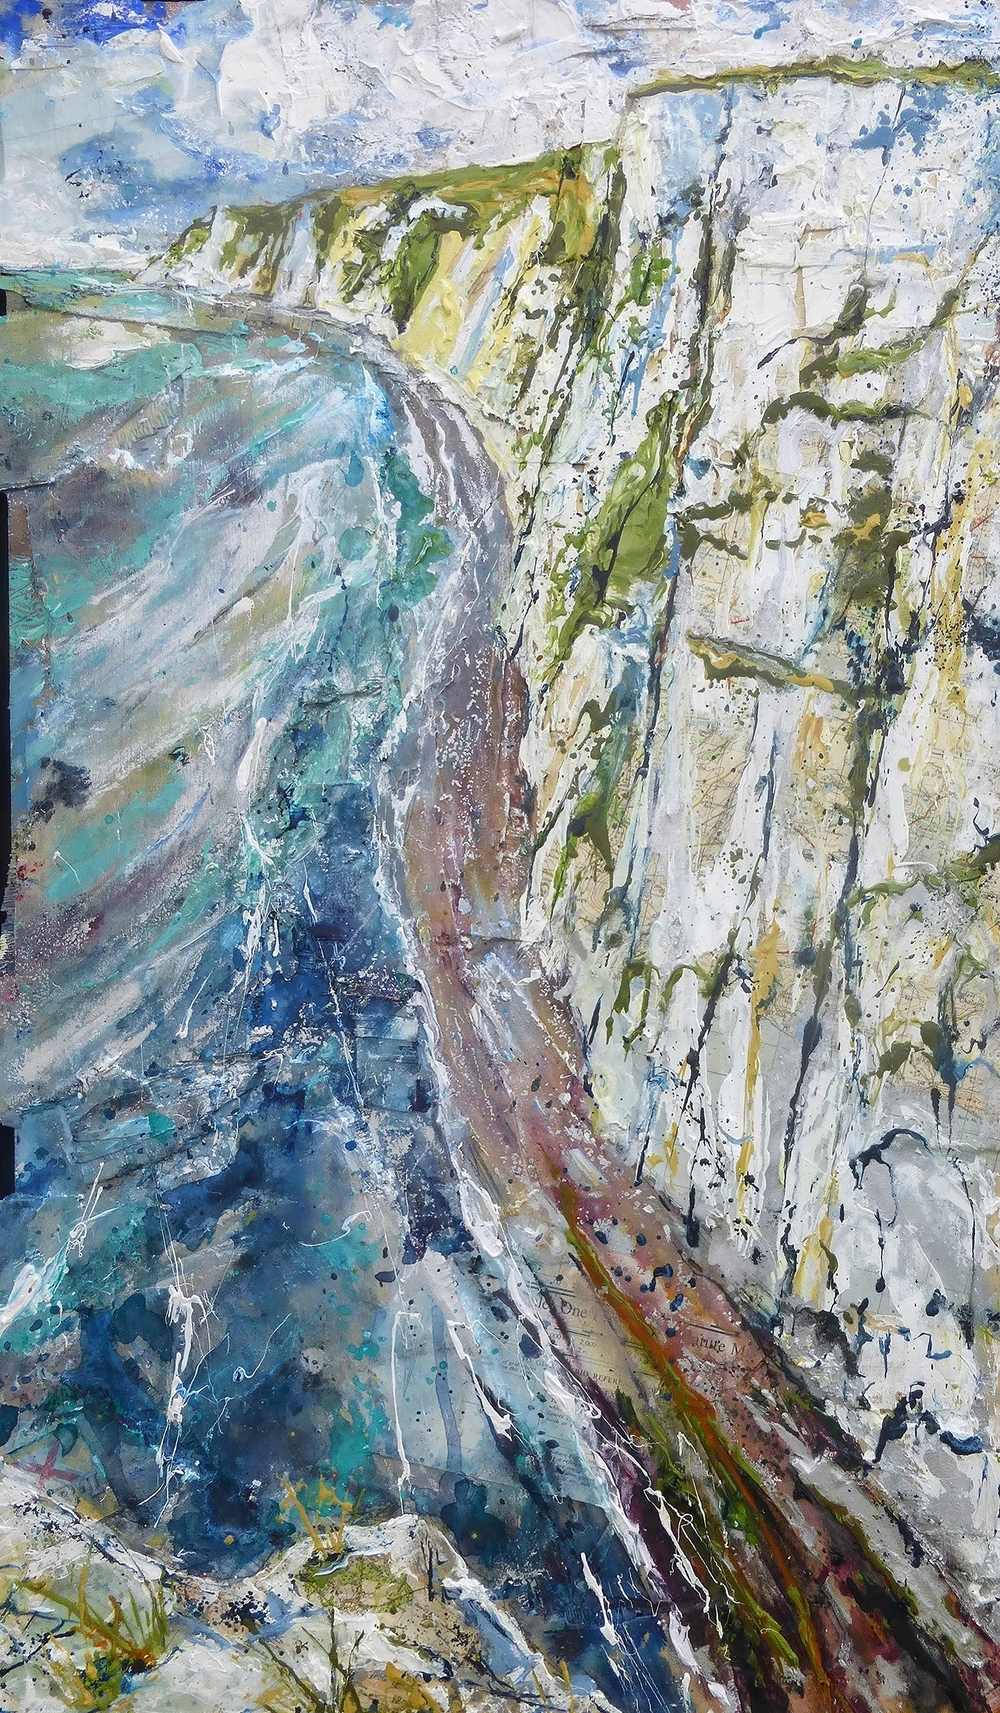 From Bat's Head to West Bolton, Purbeck Coast, Dorset. Oil, acrylic and collage on wood.